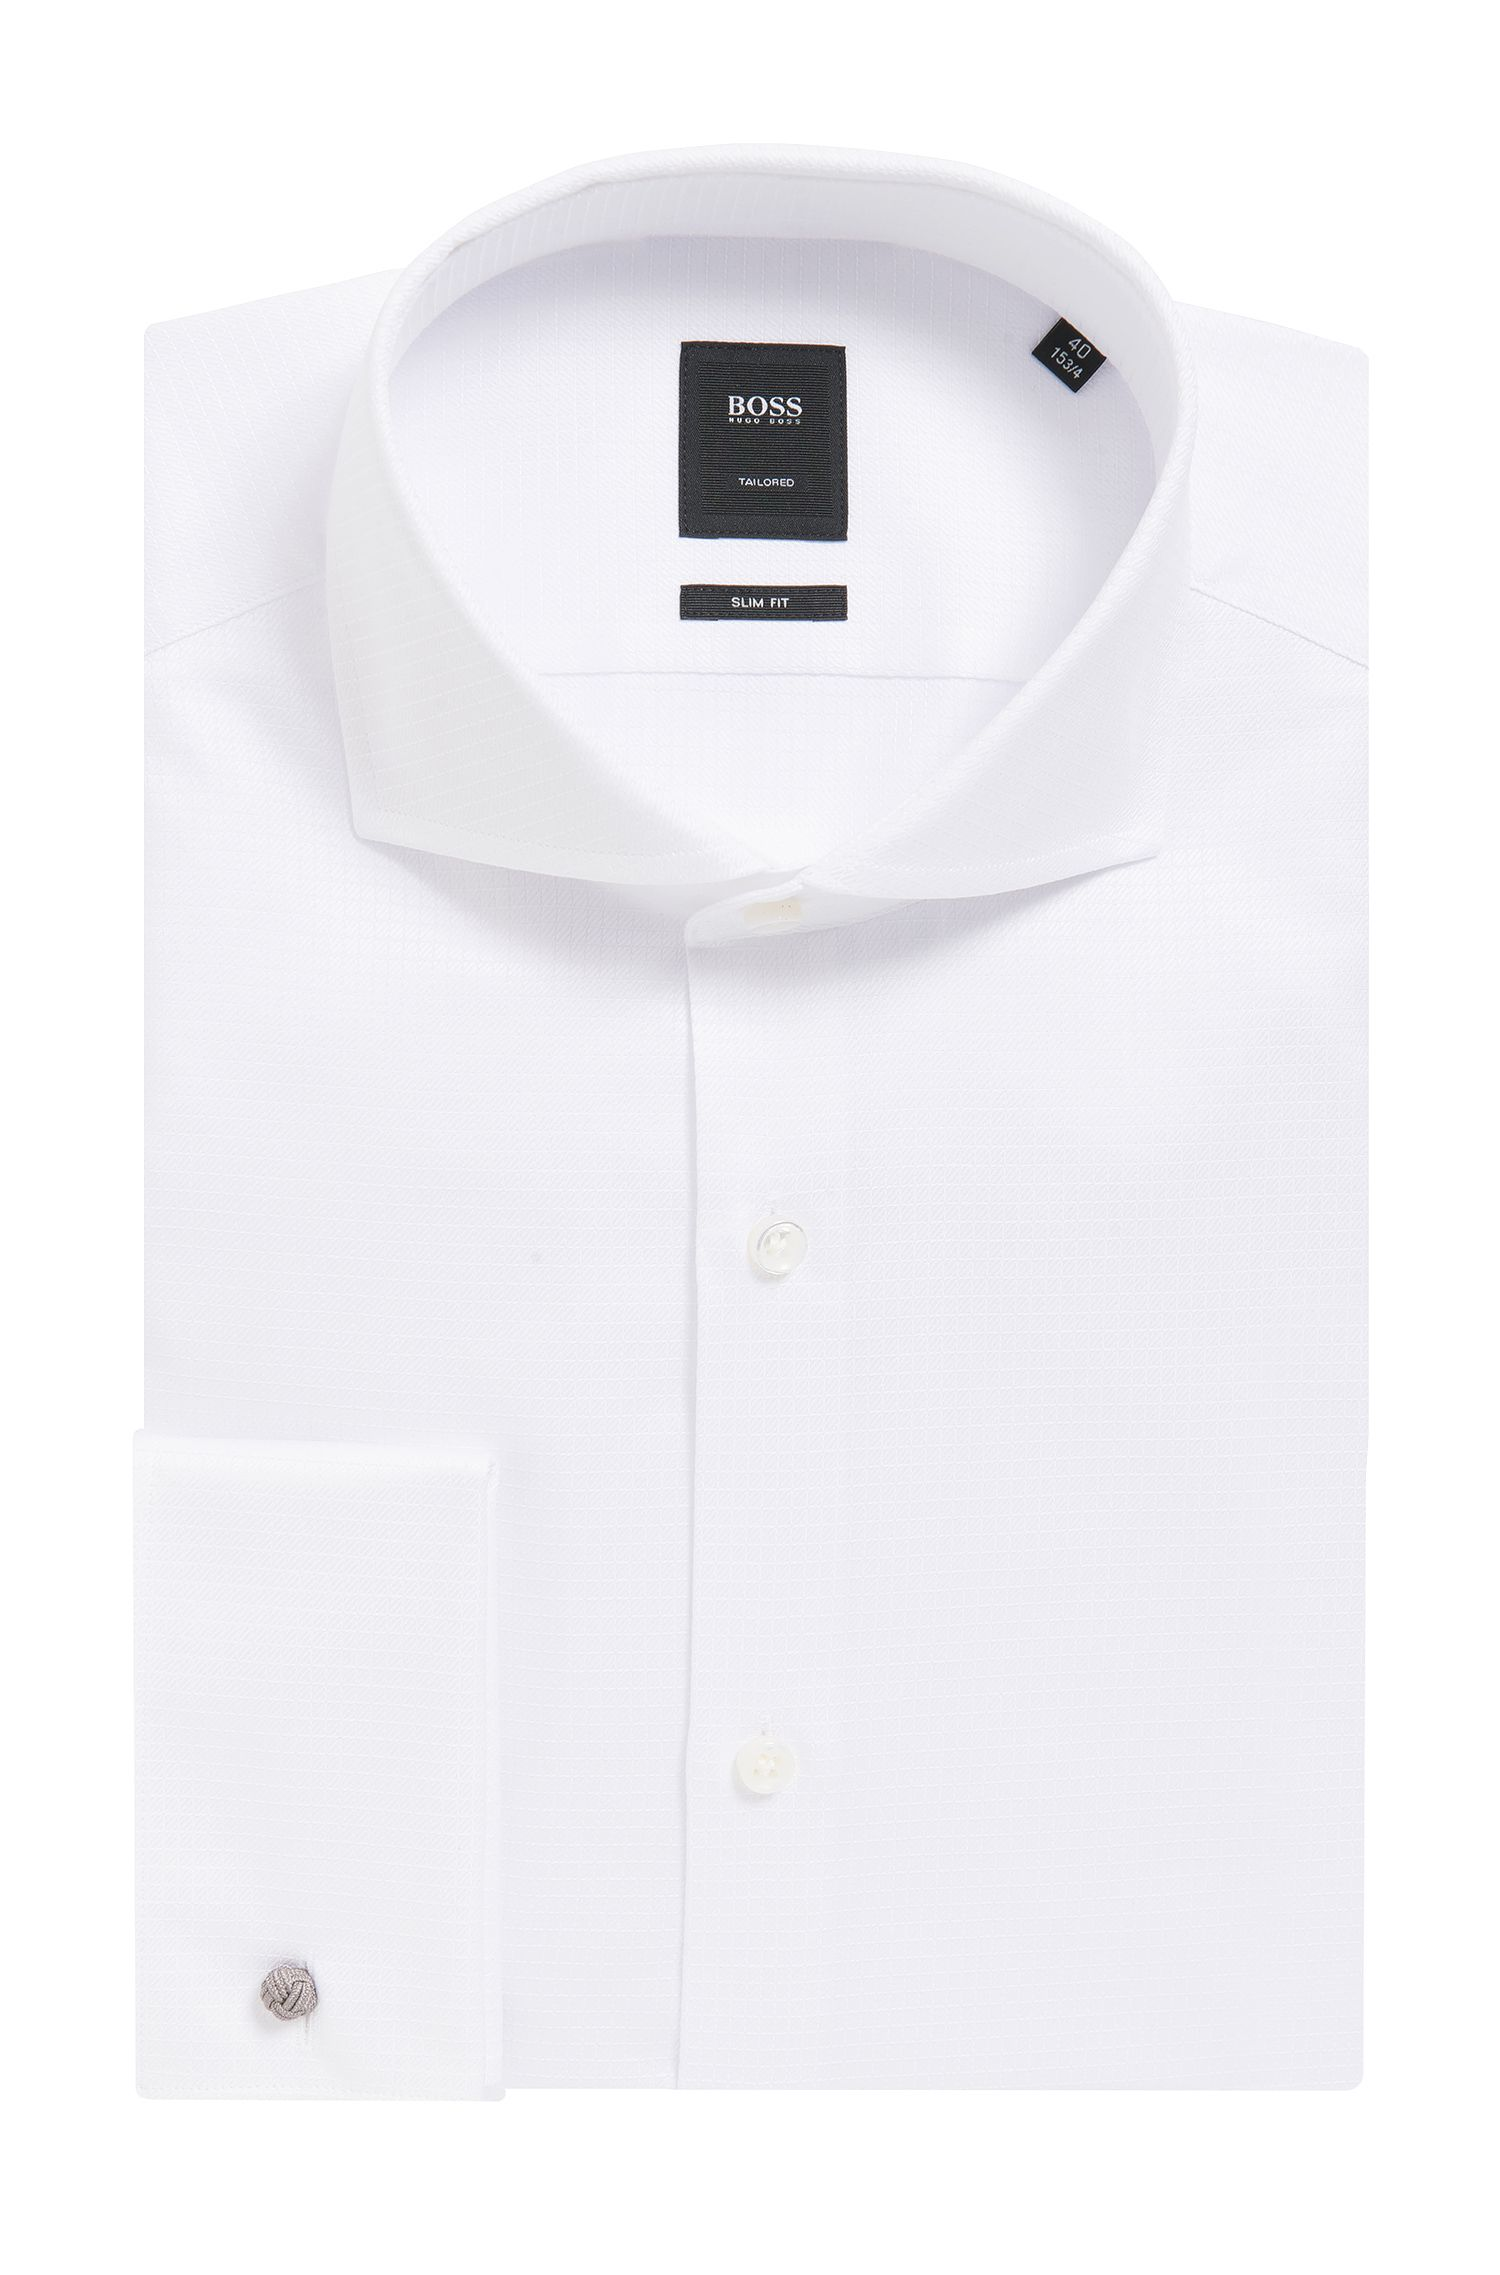 Tonal Check Cotton Dress Shirt, Slim Fit | T-Yacob